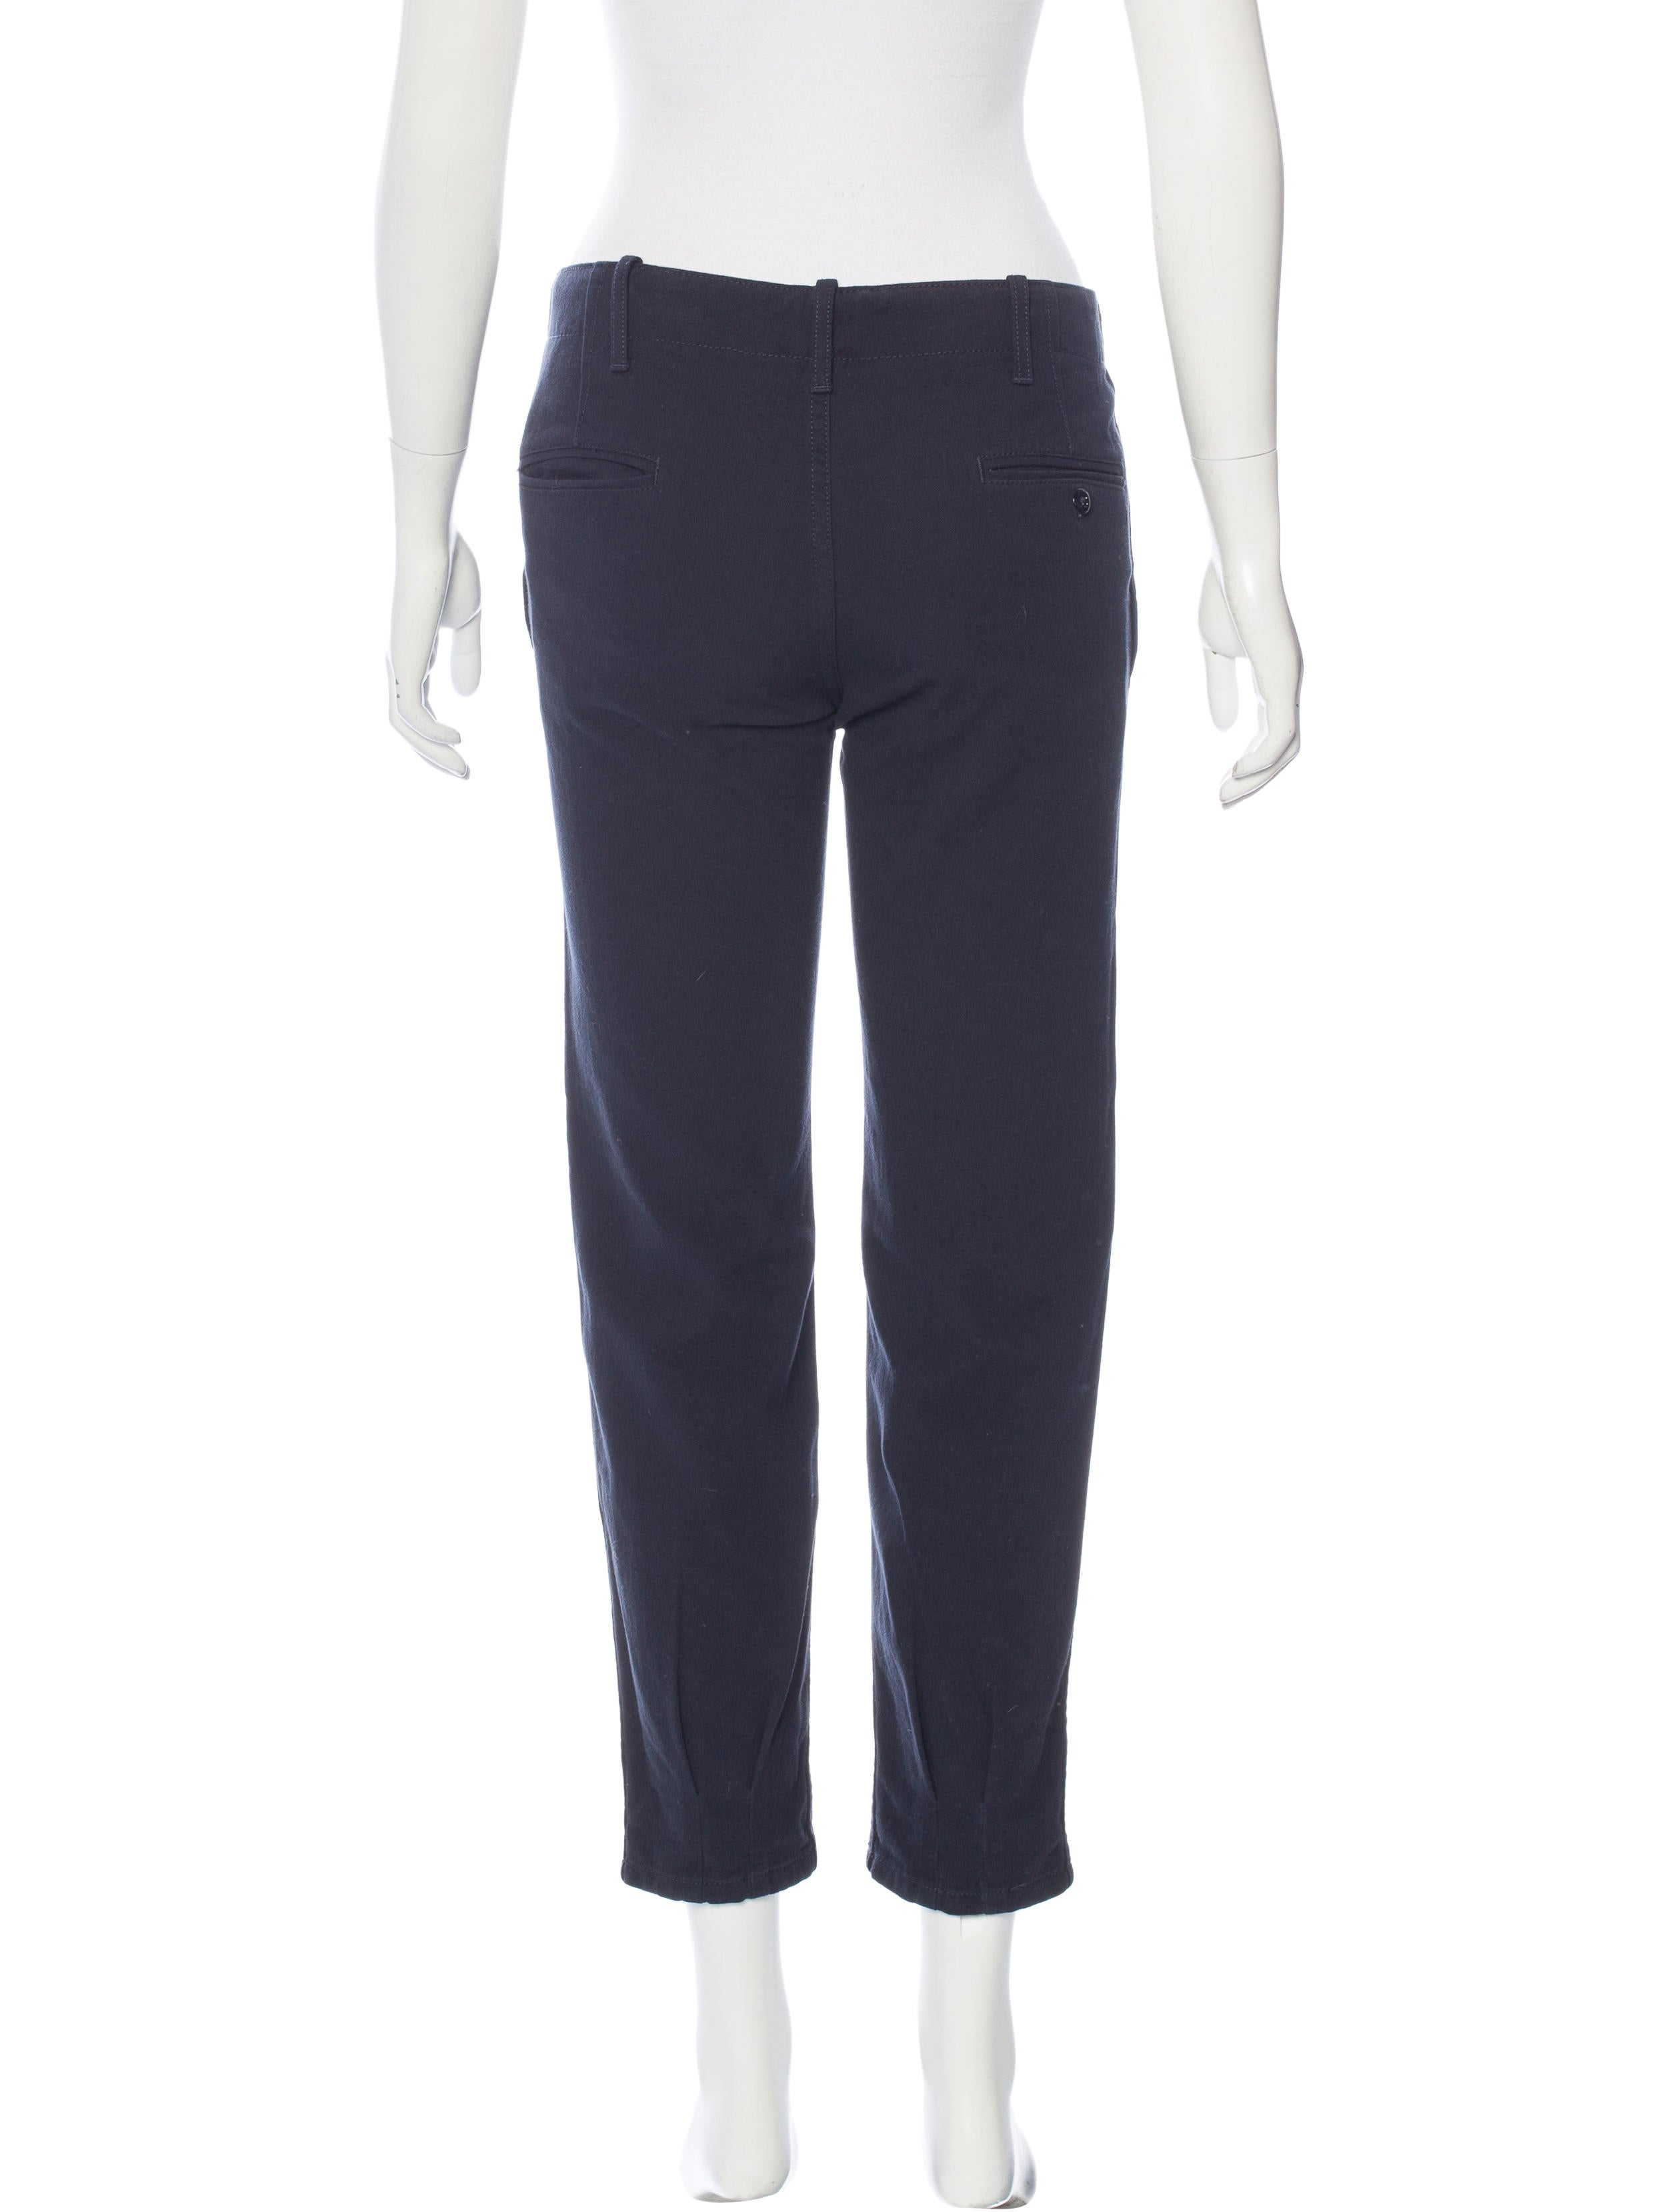 Lauren Ralph Lauren Womens Stanyslav Twill Skinny Cropped Pants BHFO See more like this. SPONSORED. reasonarchivessx.cf Cropped Pants Women's Size 6 Black Skinny Leggings Zipper Closer +$ shipping. Free Returns. Benefits charity. SPONSORED. Who What Wear Plus Size Women's Skinny Crop Ankle Pants Stretch Mid-Rise - .